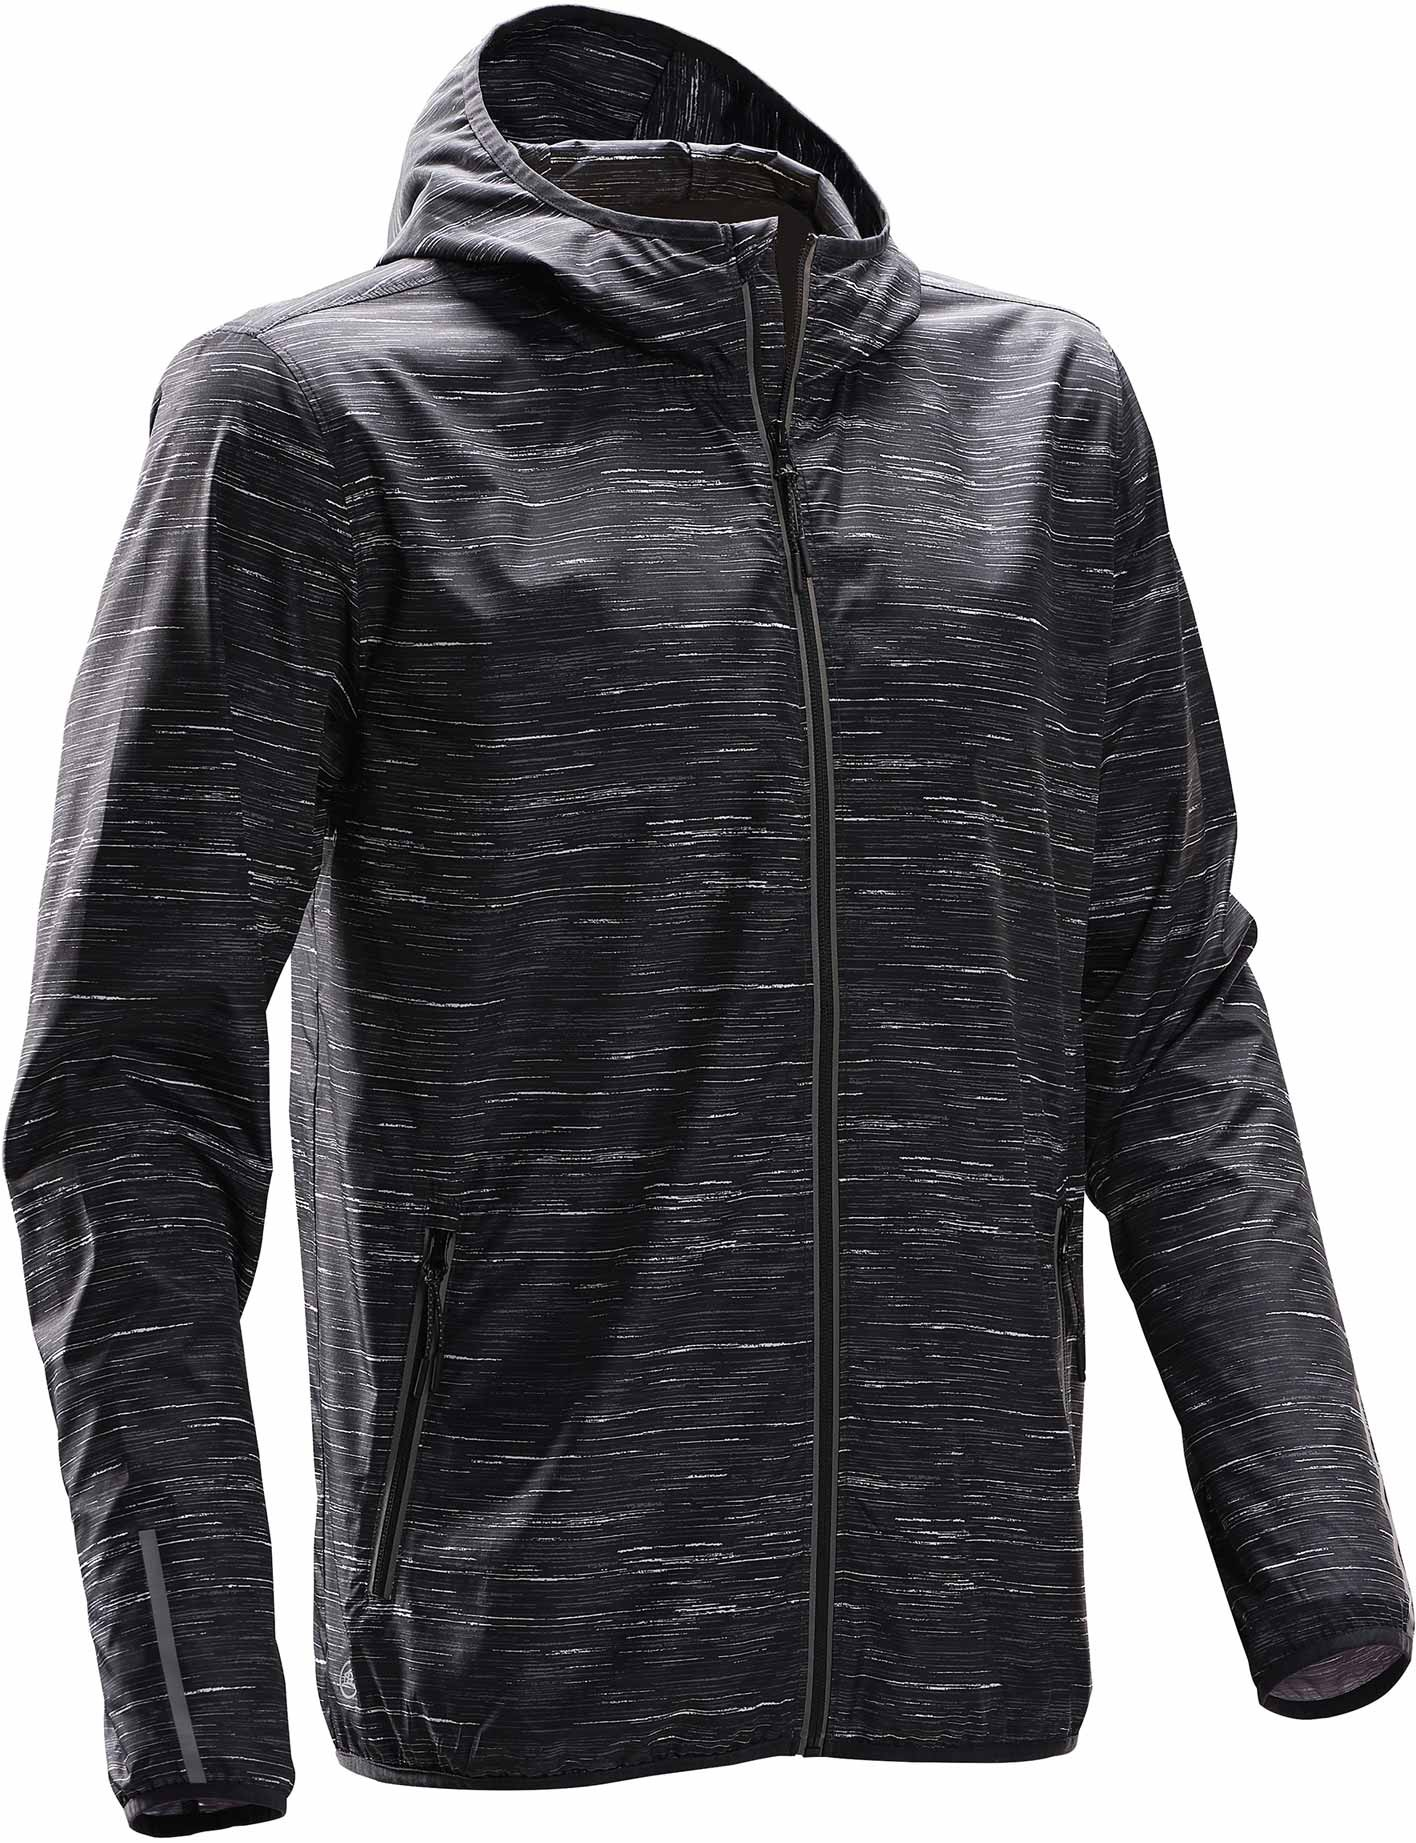 Stormtech APJ-2 - Men's Ozone Lightweight Shell Jacket